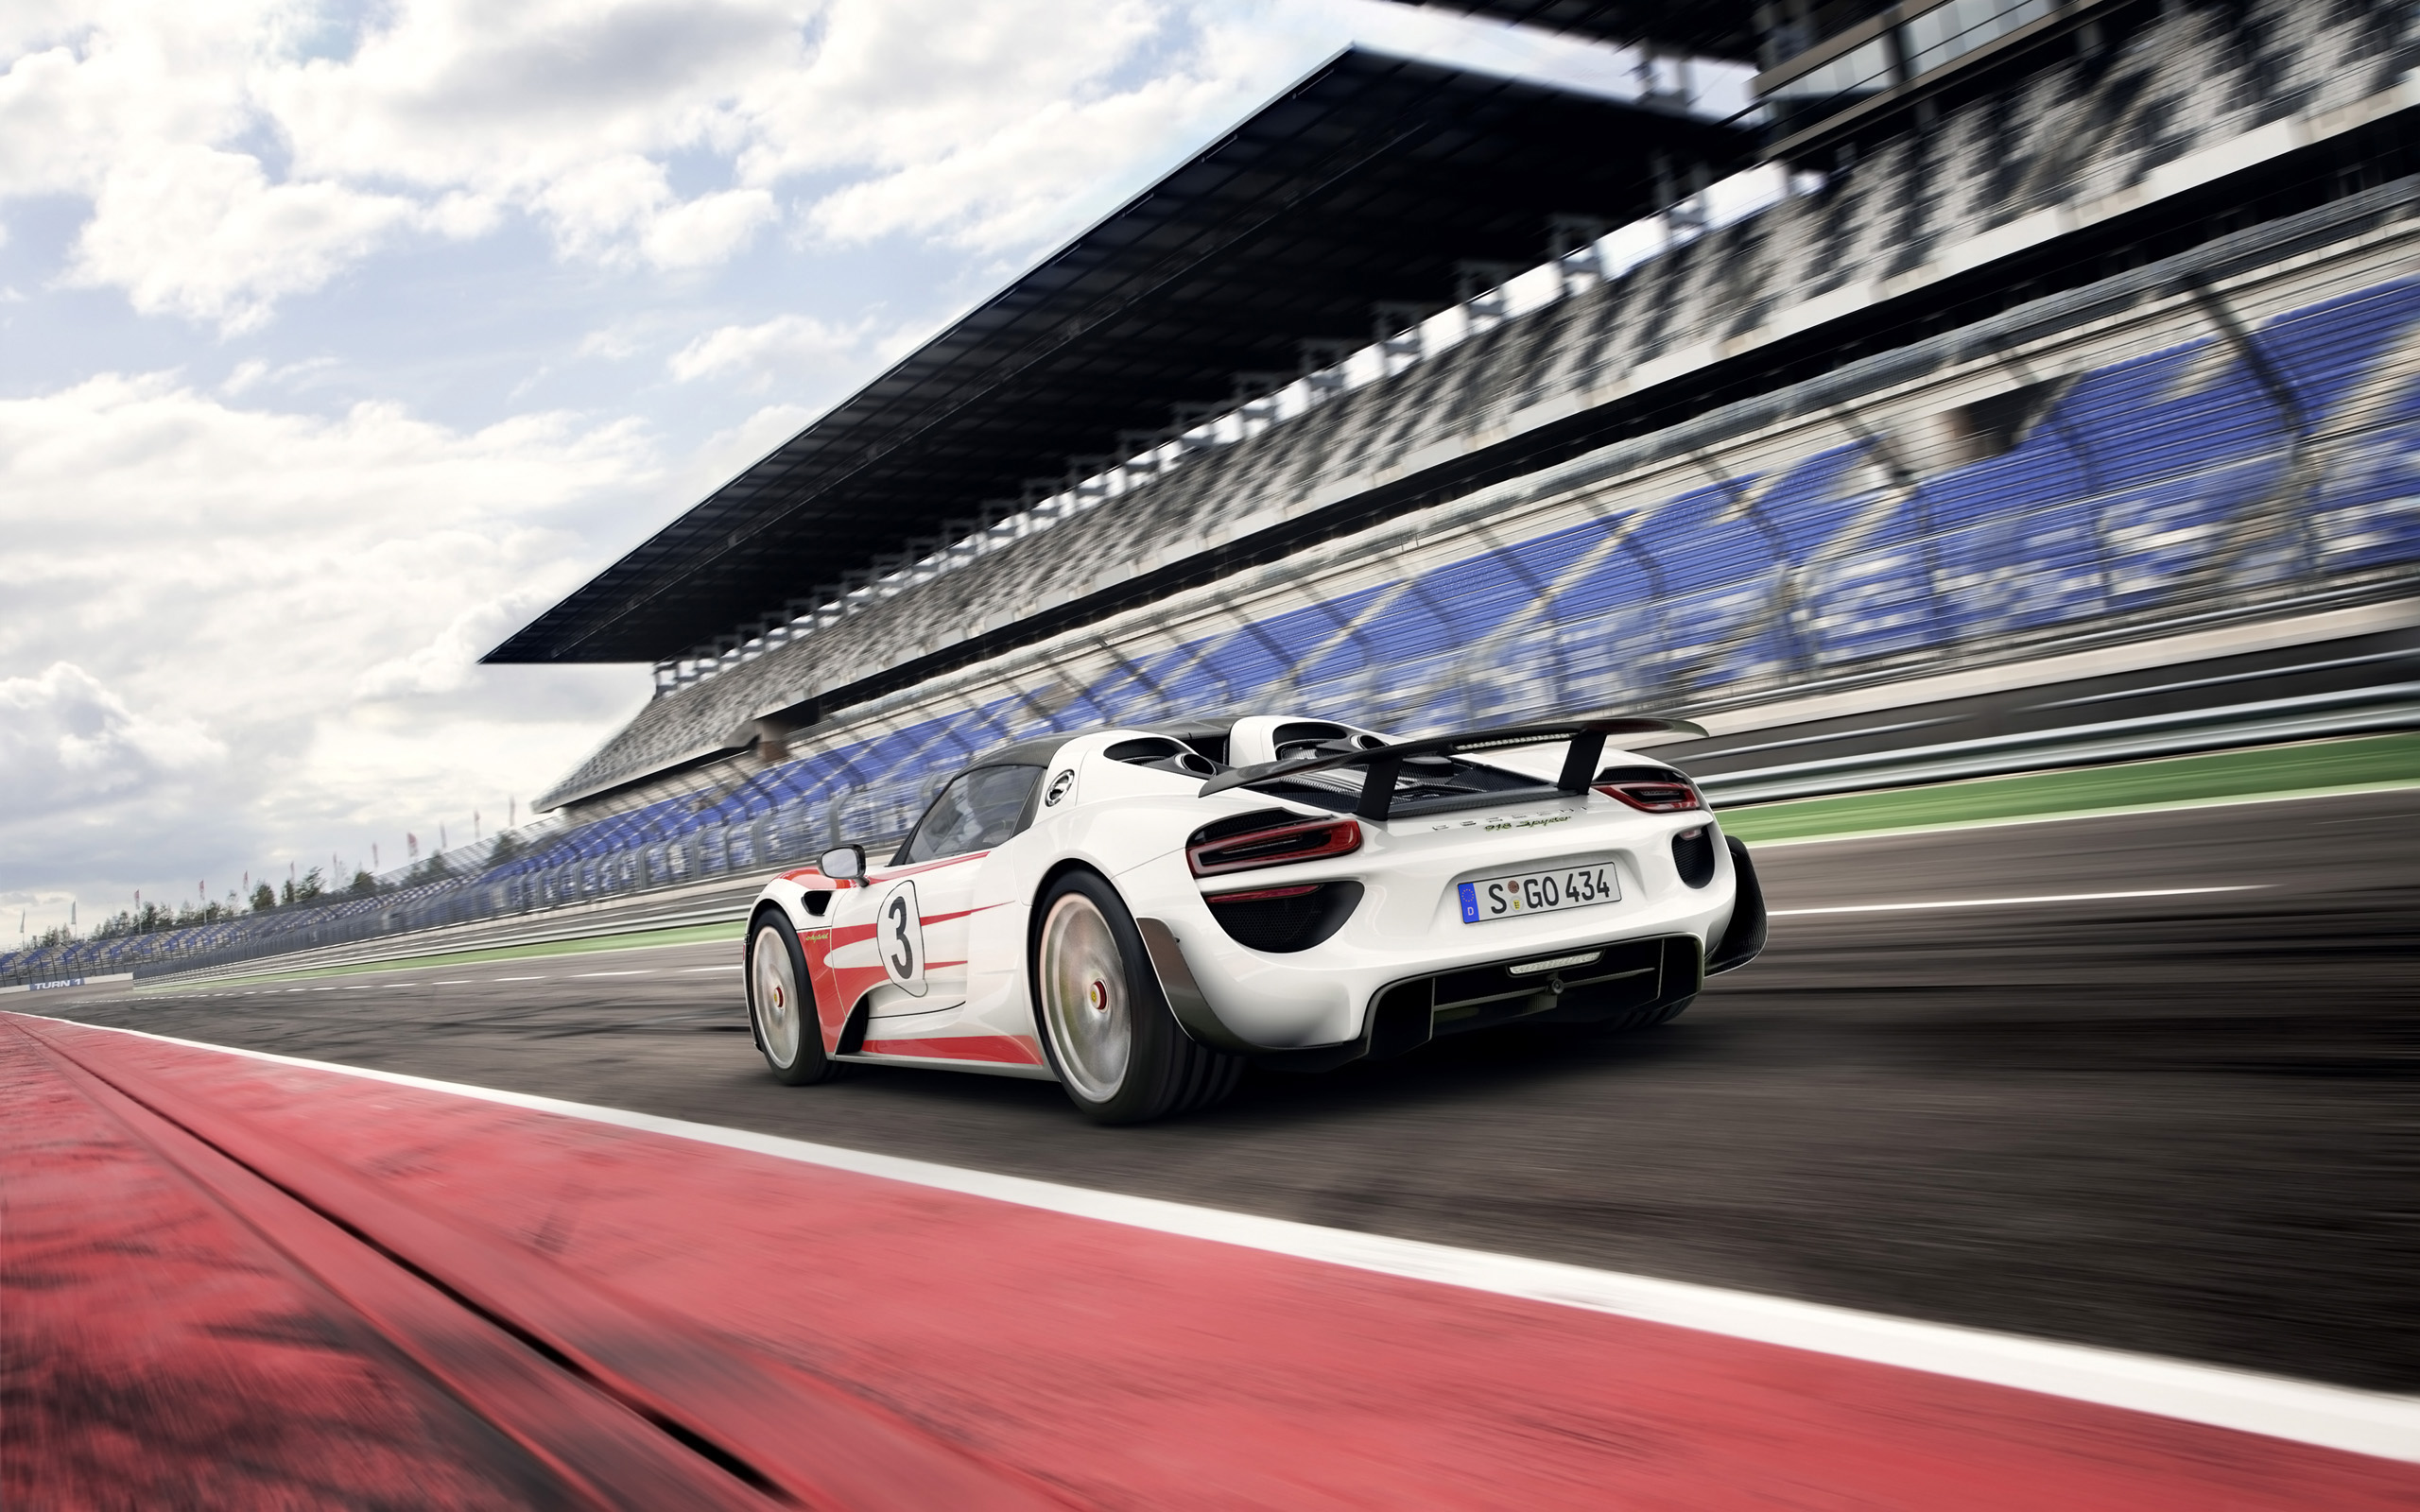 2014 porsche 918 spyder weissach package 2 - Porsche 918 Spyder Wallpaper